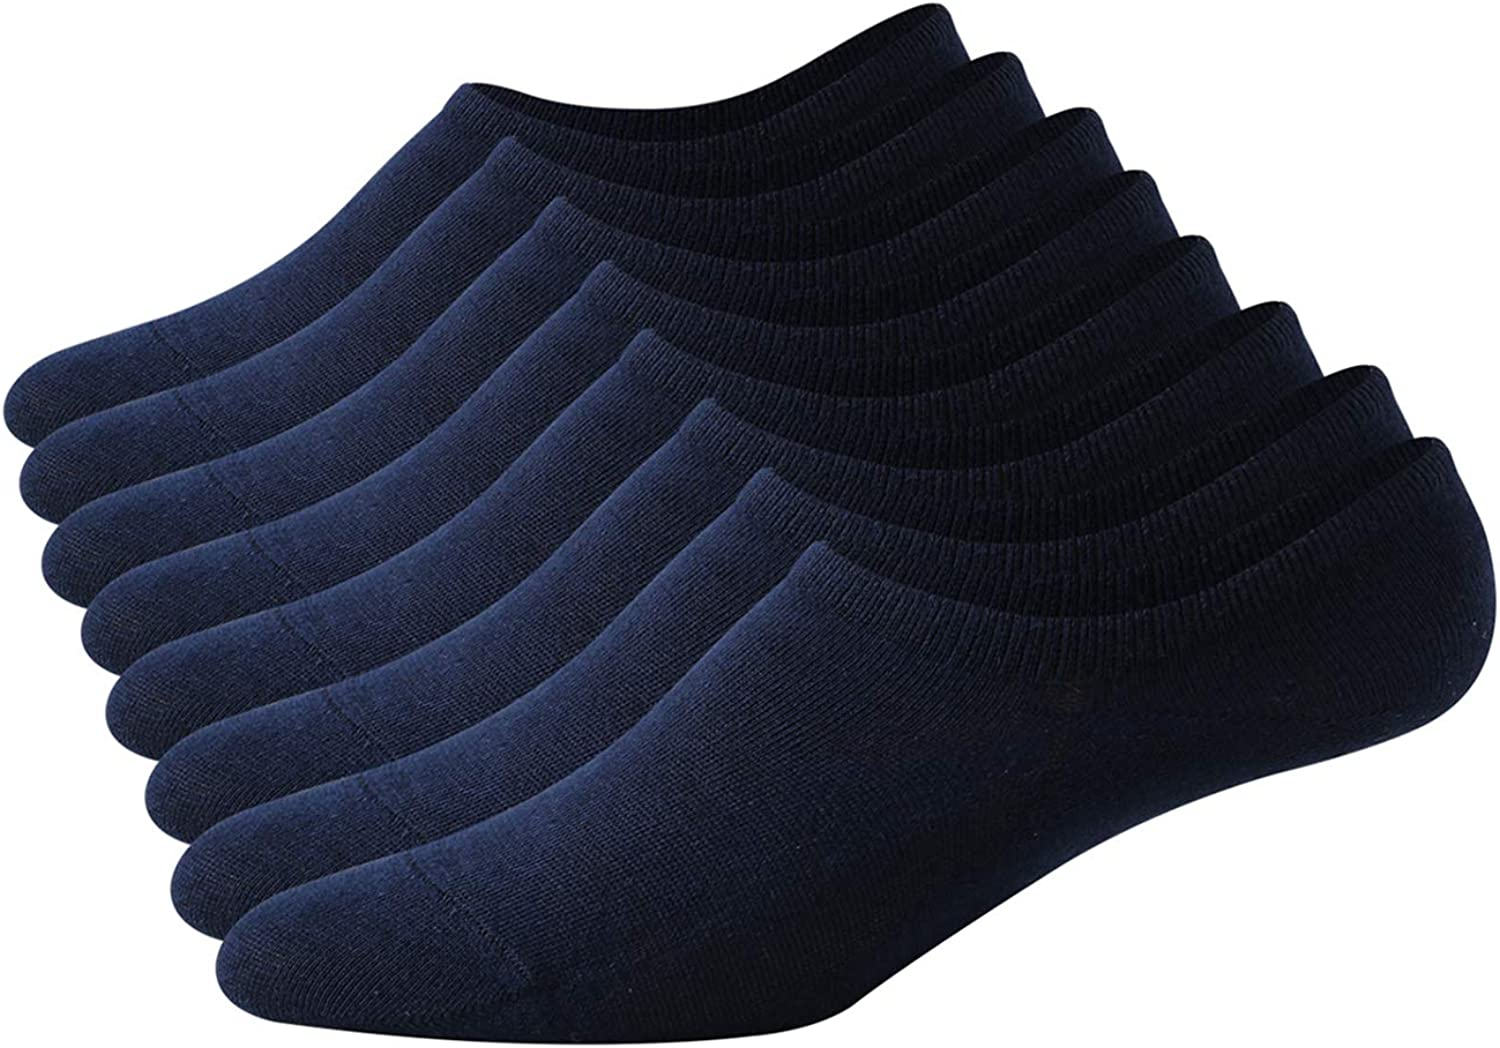 Women /& Men No Show Loafer Socks,Non-Slip Casual Low Cut Boat Sock invisible socks 6//8 pairs